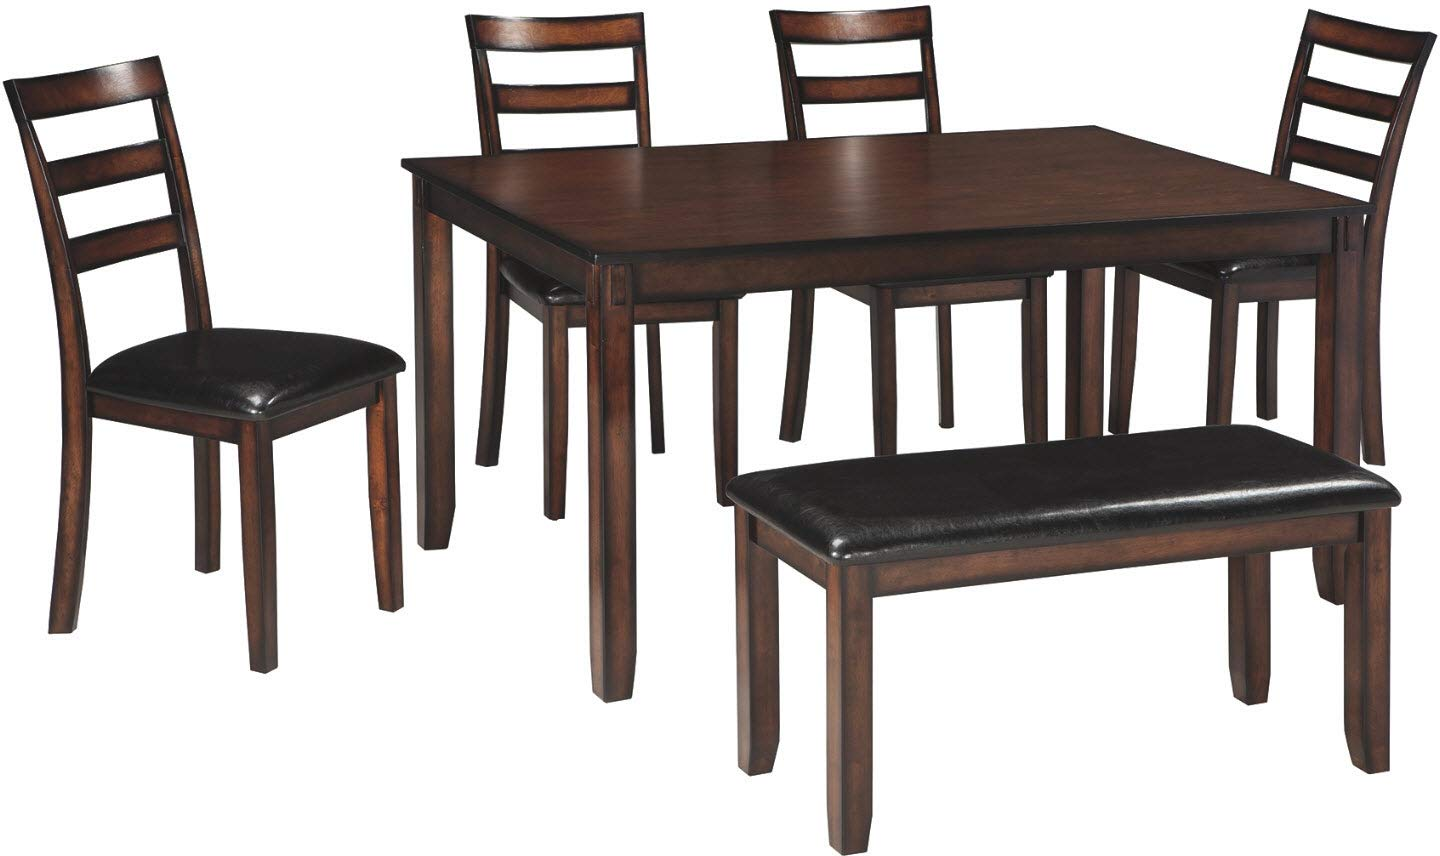 Ashley Furniture Signature Design Coviar Dining Room Table And Chairs With Bench Set Of 6 Brown